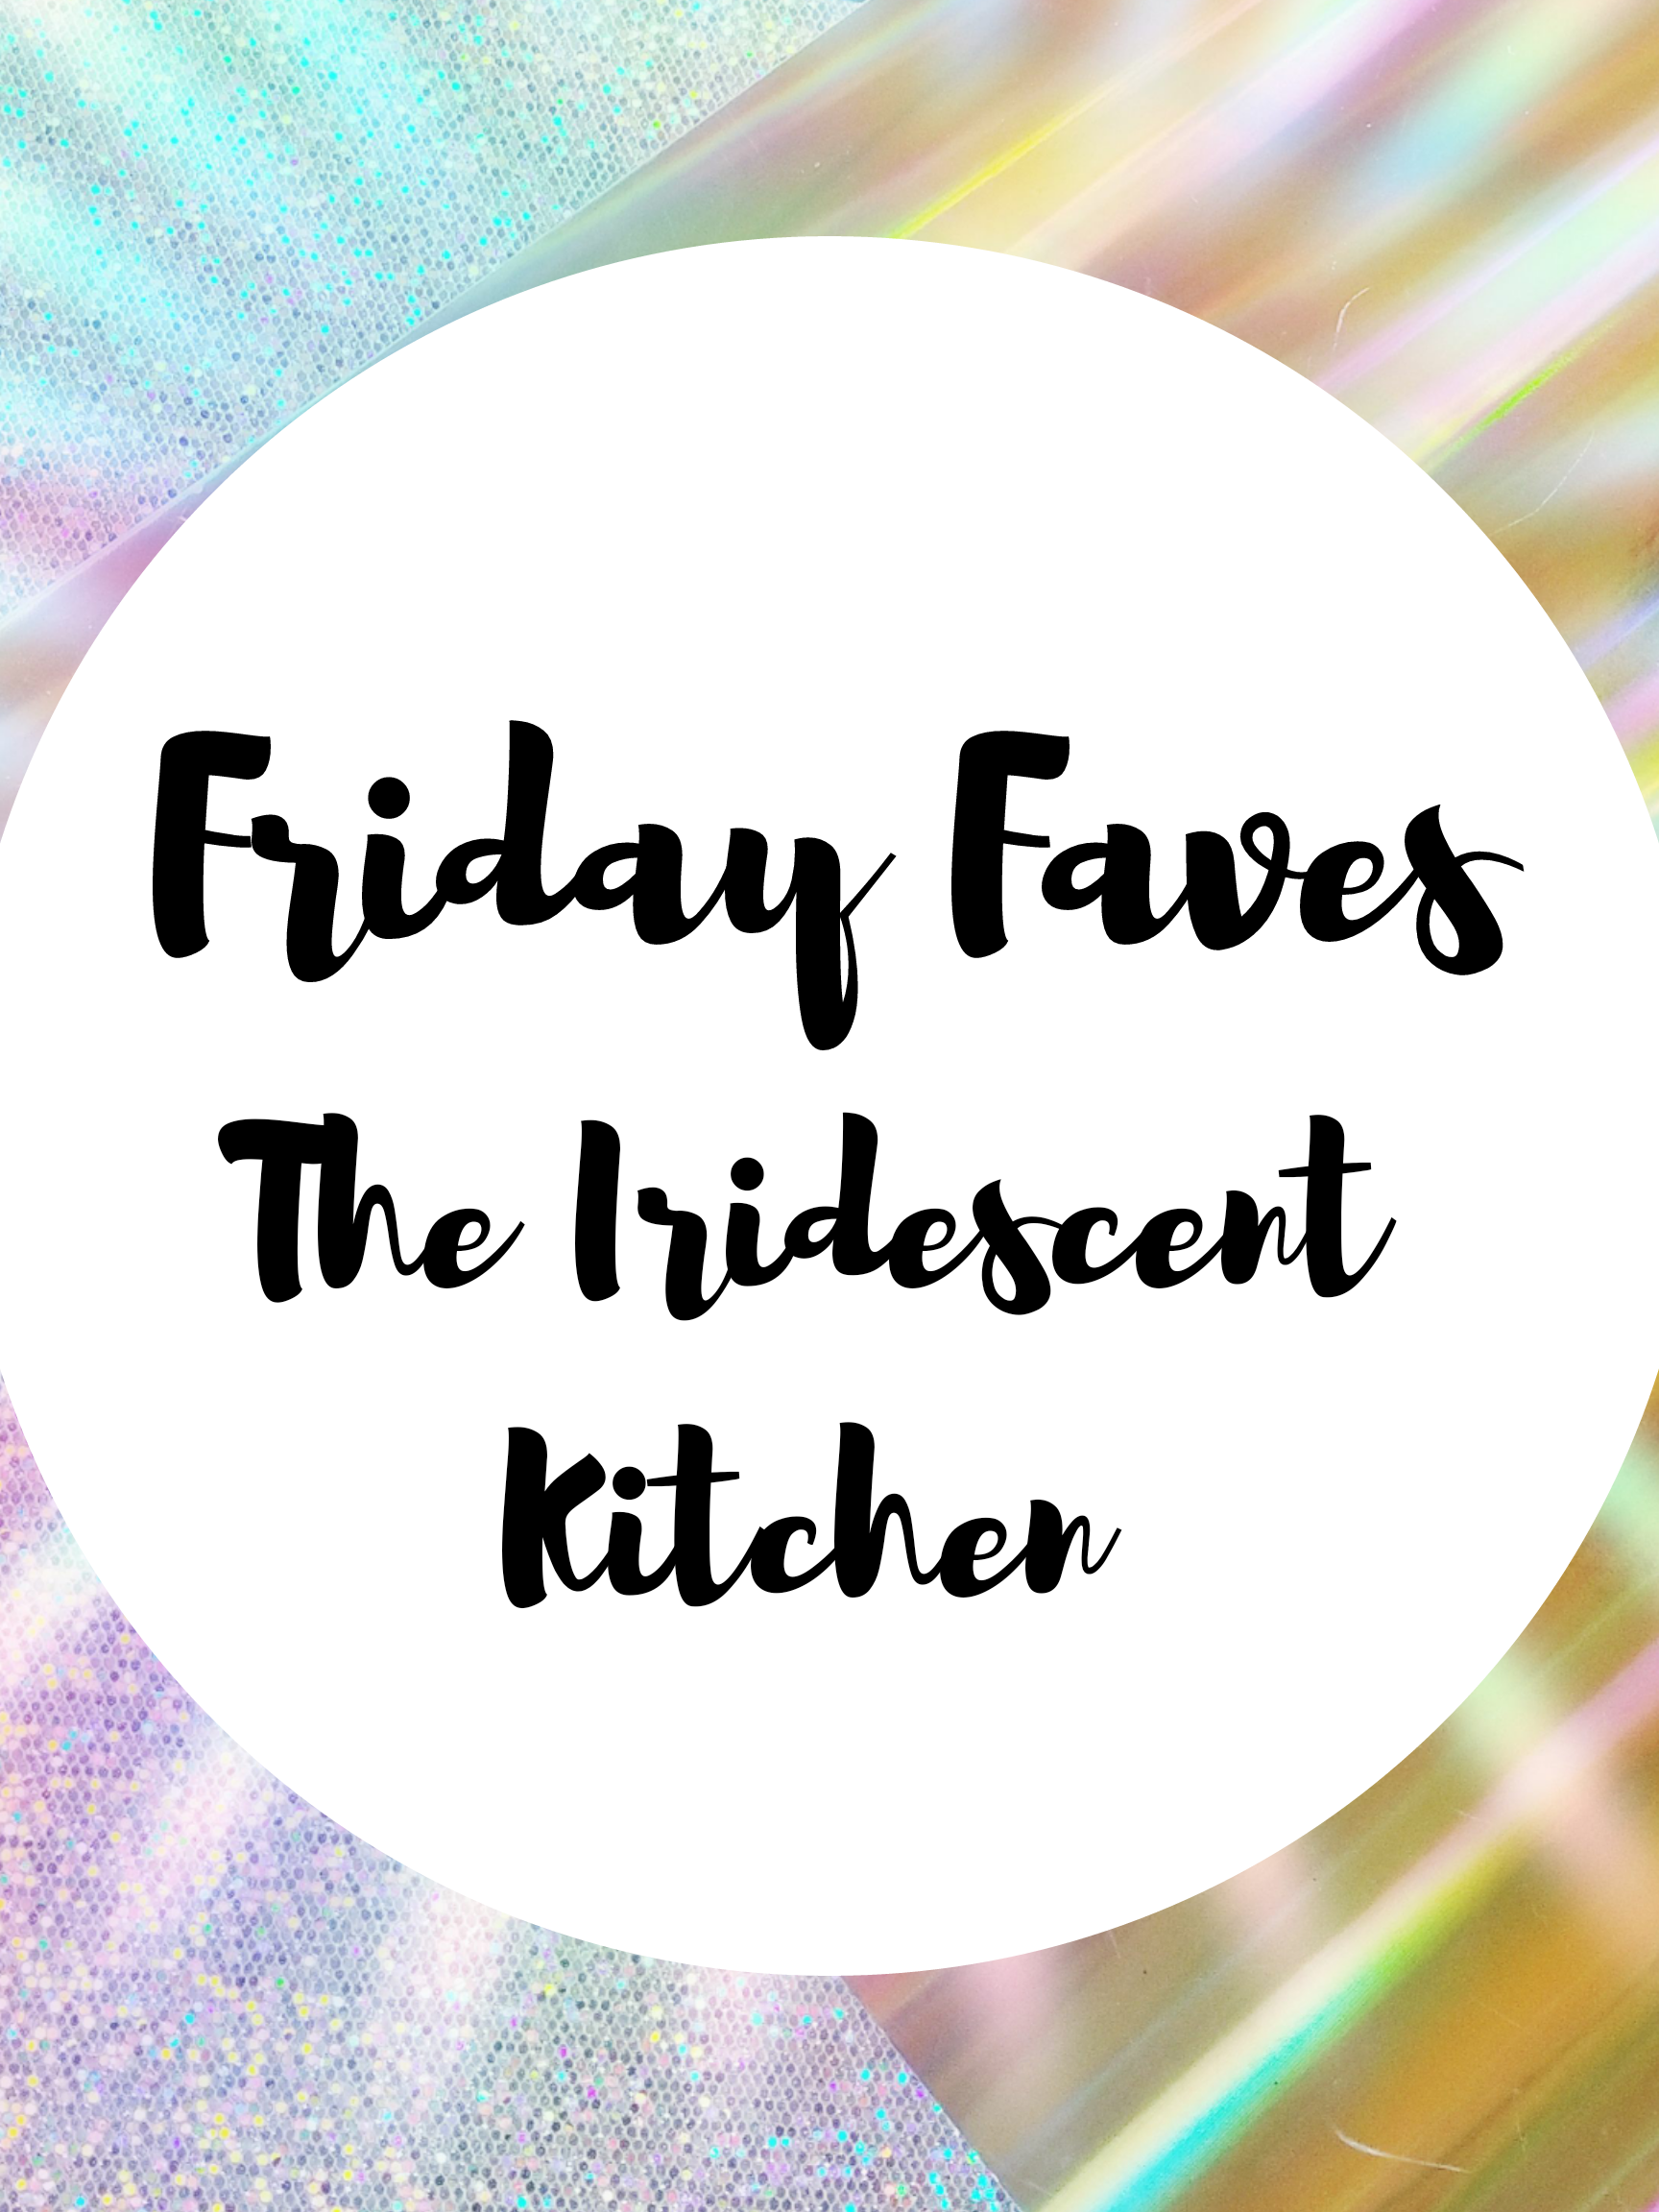 20180928 082347 00011972488412 - Iridescent Home & Kitchen Items - Holographic Rainbow Gift Guide - Friday Faves